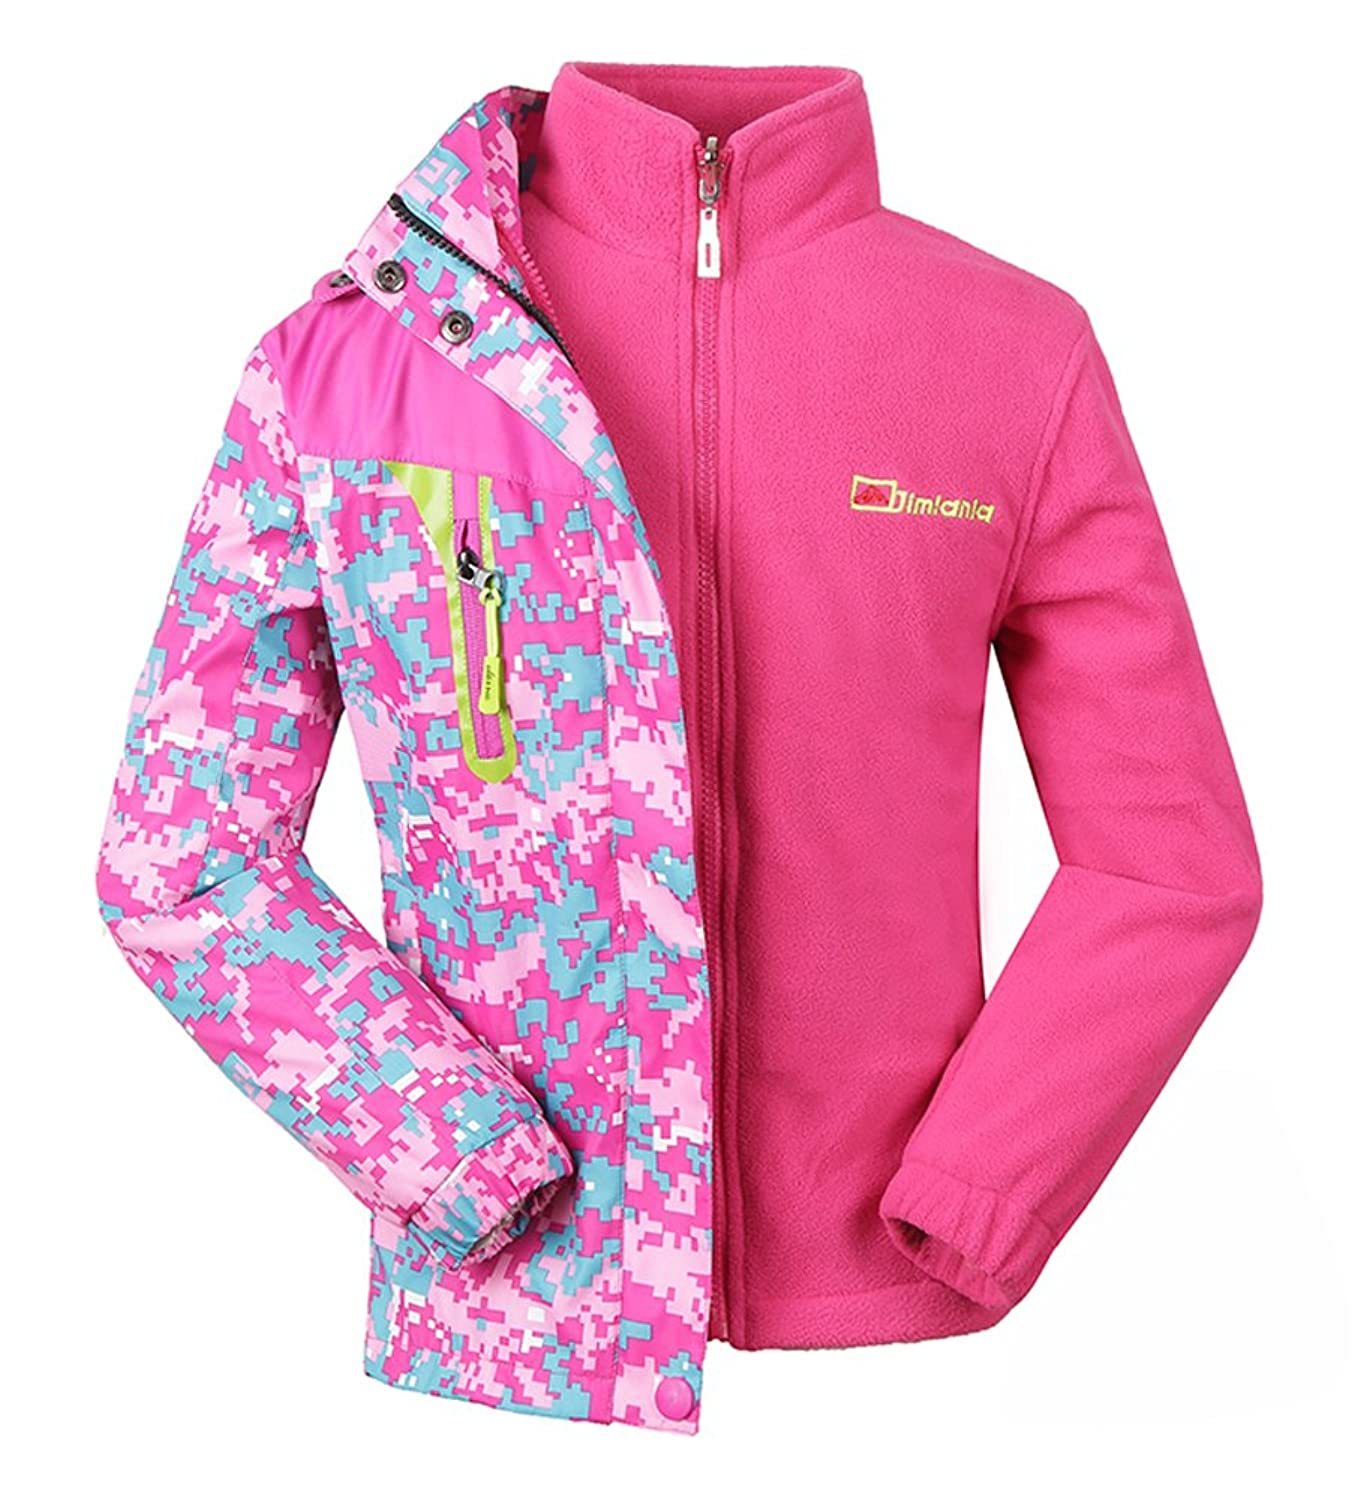 Amazon.com: Roseate Girls 3-in-1 Jacket with Fleece Liner Outdoor ...